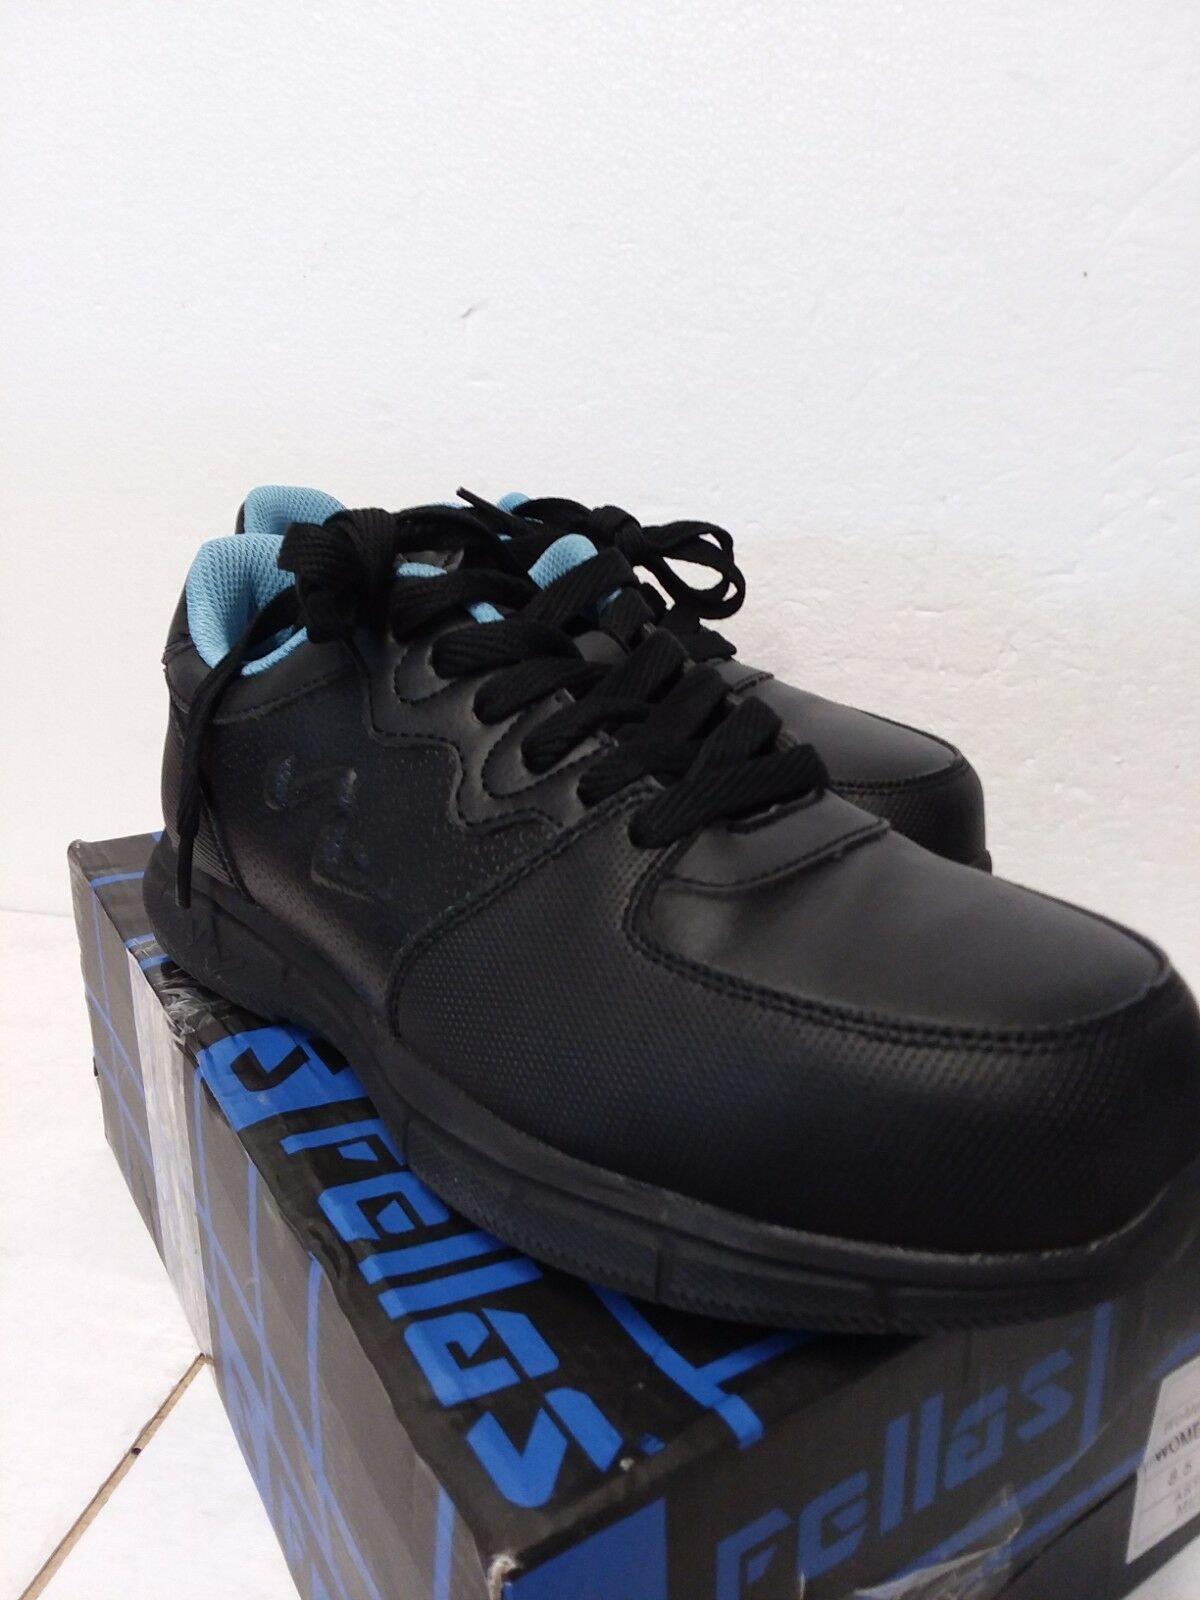 S Fellas Genuine Grip Slip Resistant Steel Toe Work shoes Black Womens 8.5